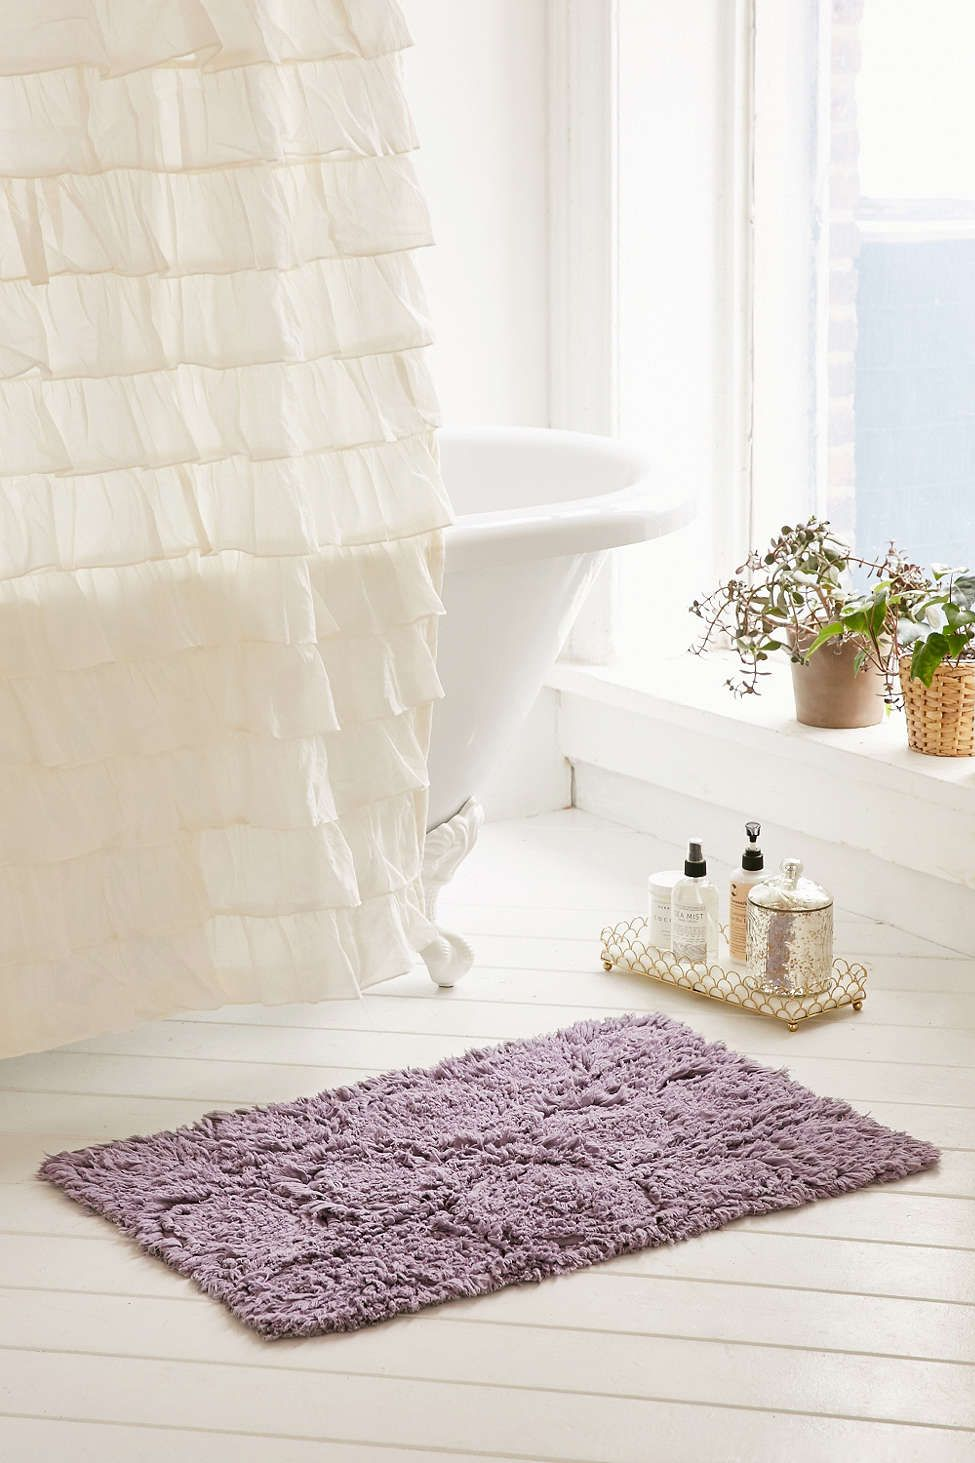 boys bathroom the red on diy pinterest top clean dirty white creative urban bath turns best for when ideas rug outfitters mats gallery mat fun that kinda wet